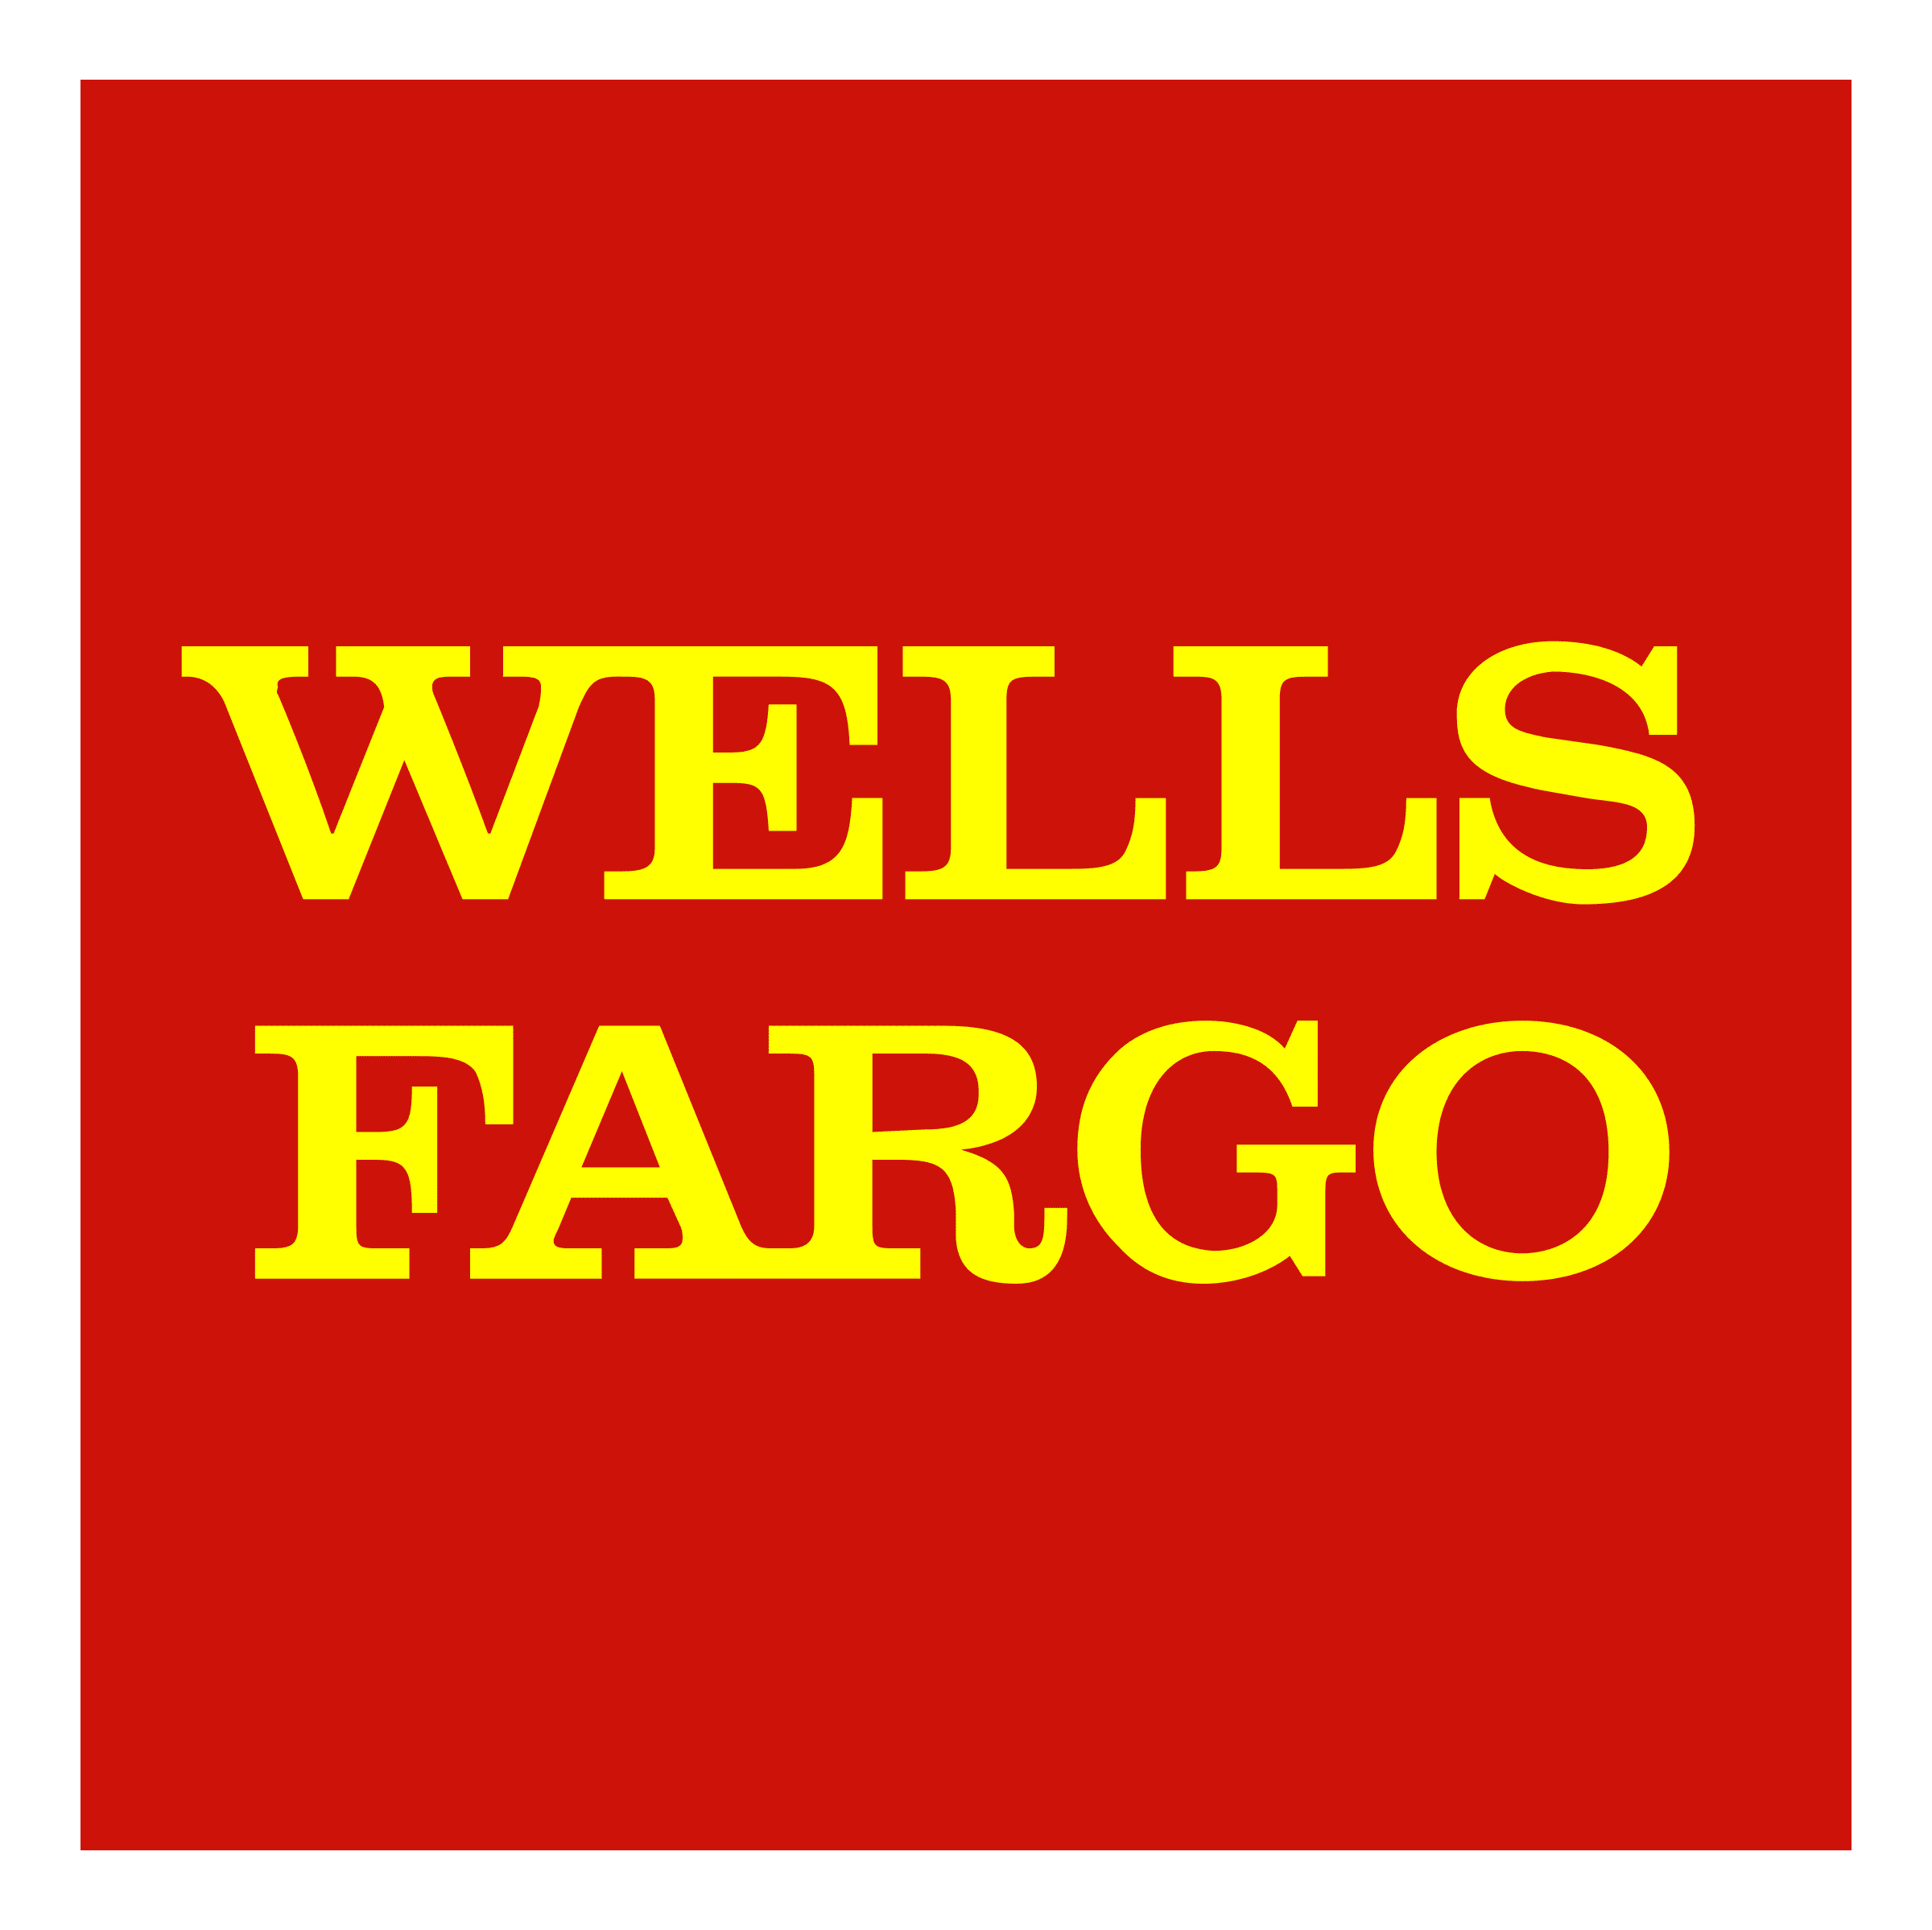 wells-fargo-logo-transparent